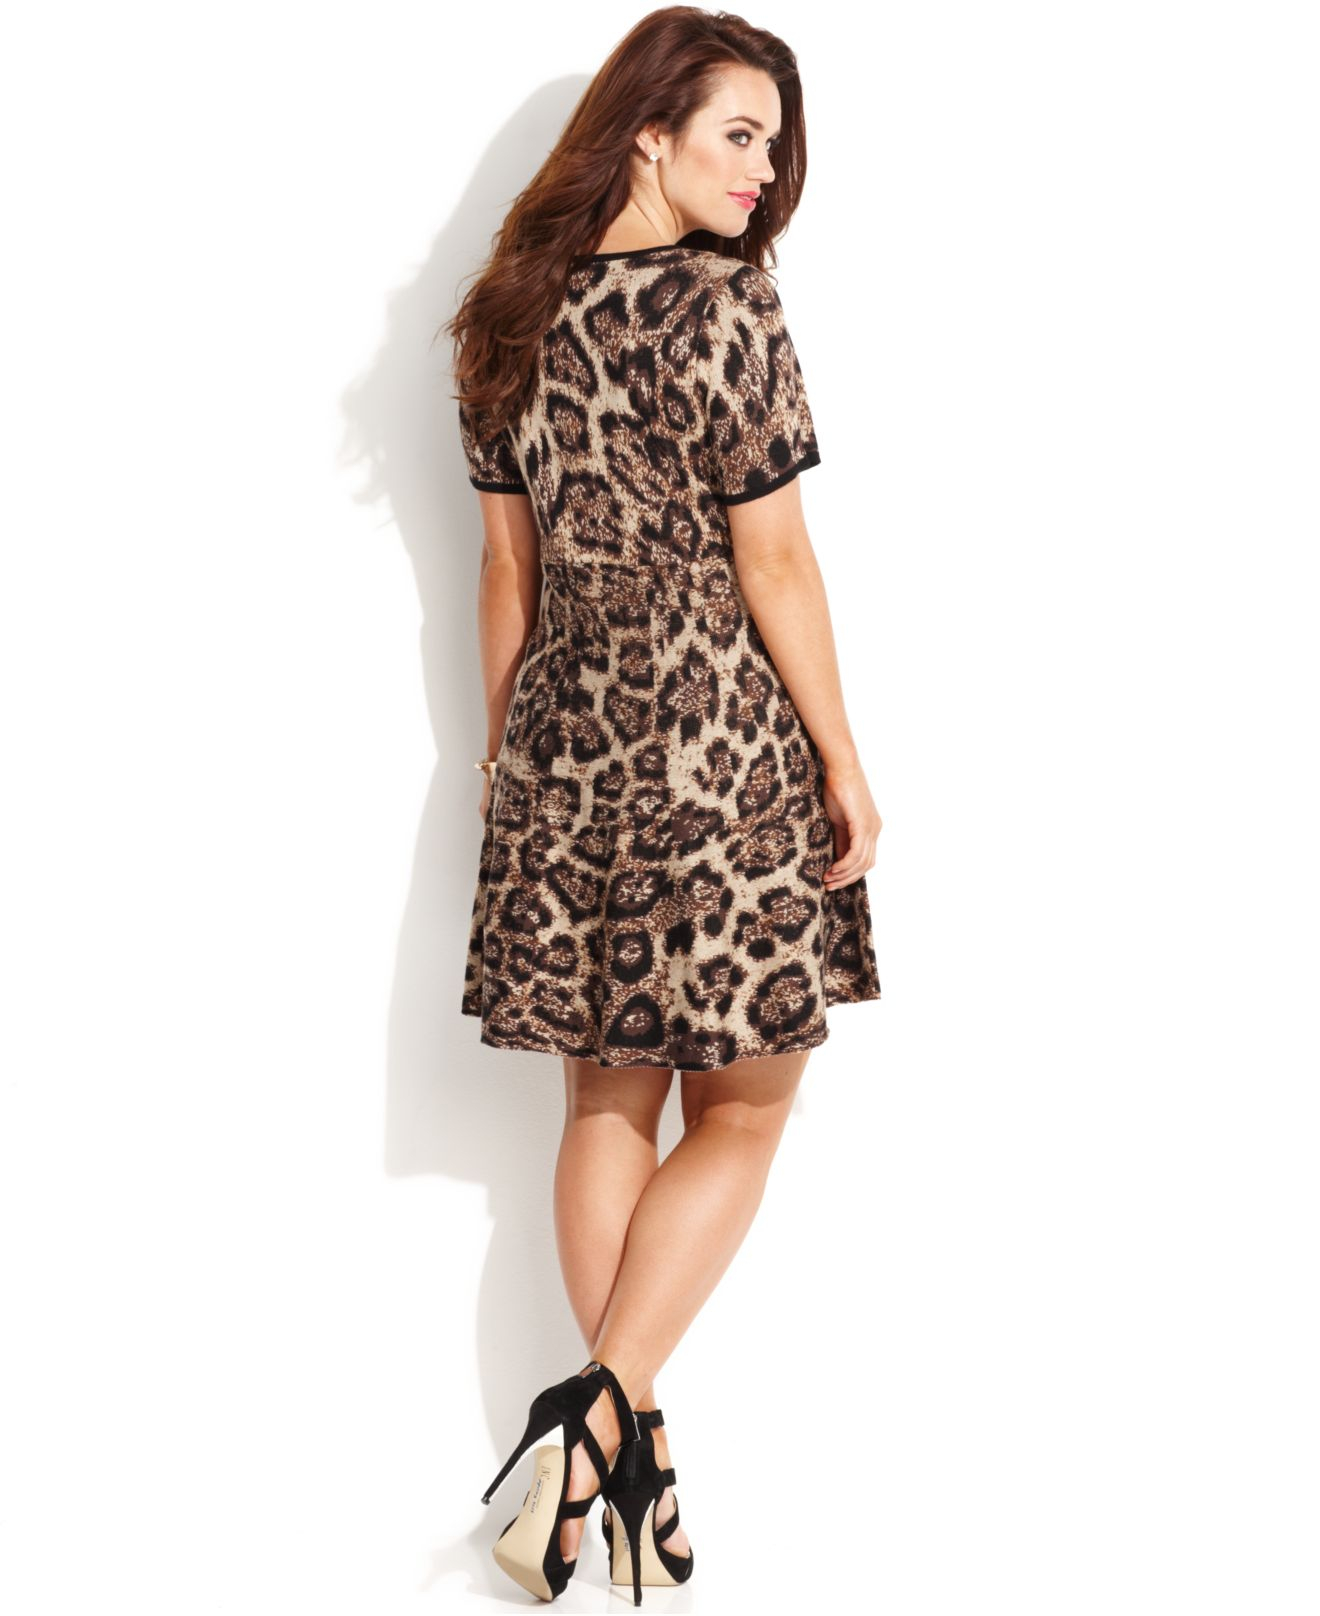 Inc international concepts Plus Size Short-Sleeve Animal-Print ...